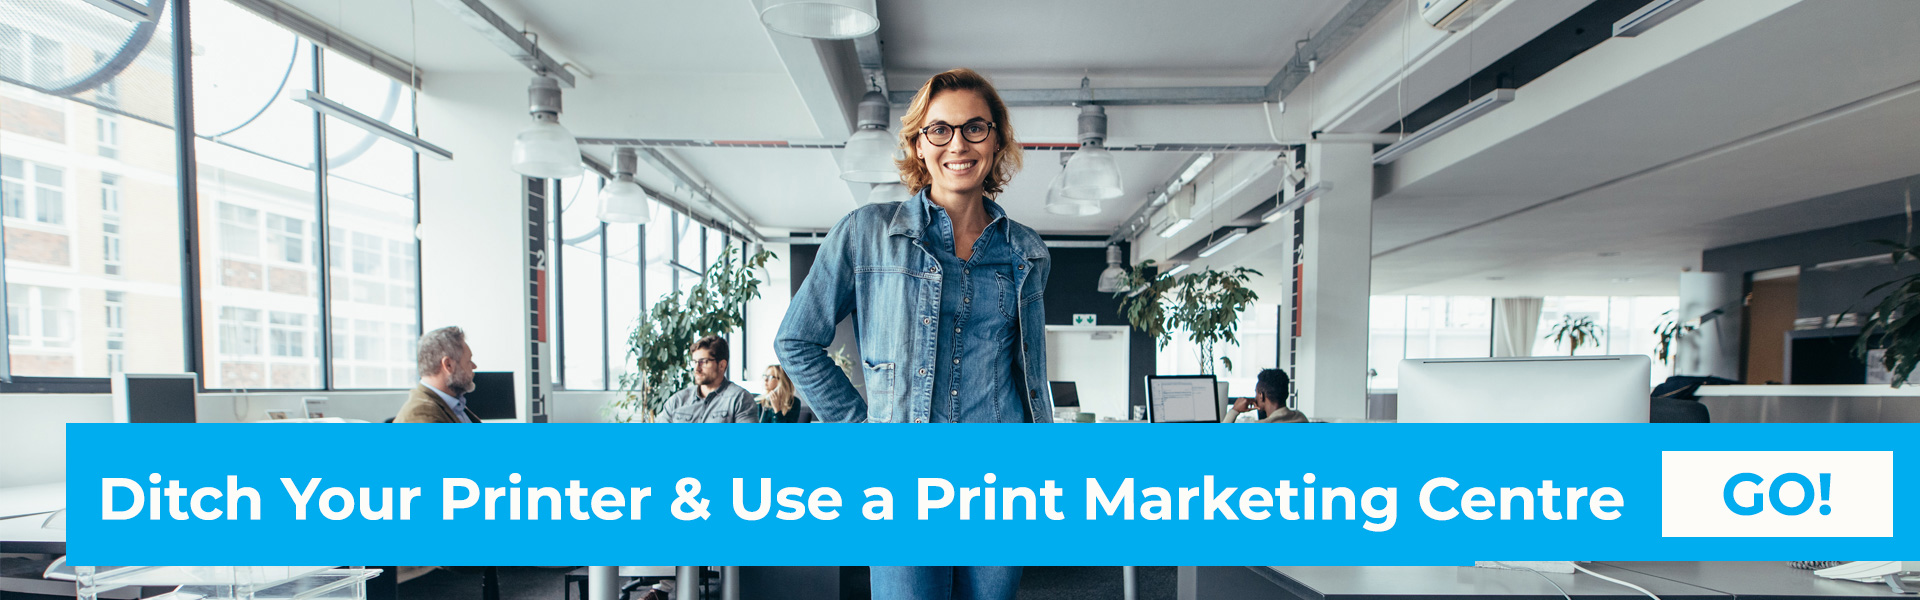 PRINT-MARKETING-CENTRE